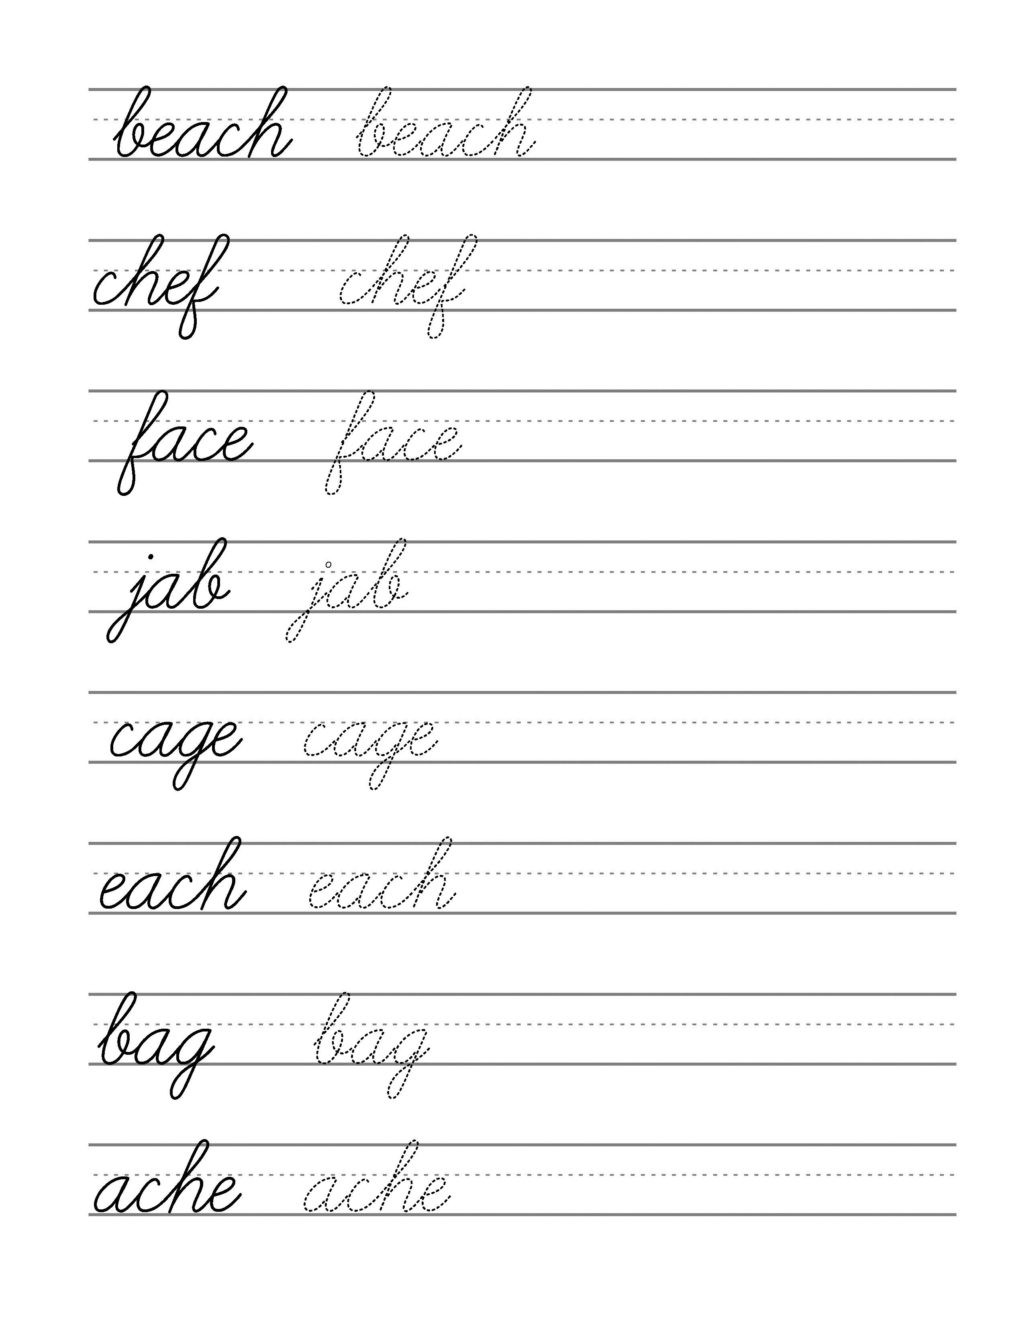 2nd Grade Handwriting Worksheets Pdf Worksheet Awesome Handwriting Booklet Ideas Free